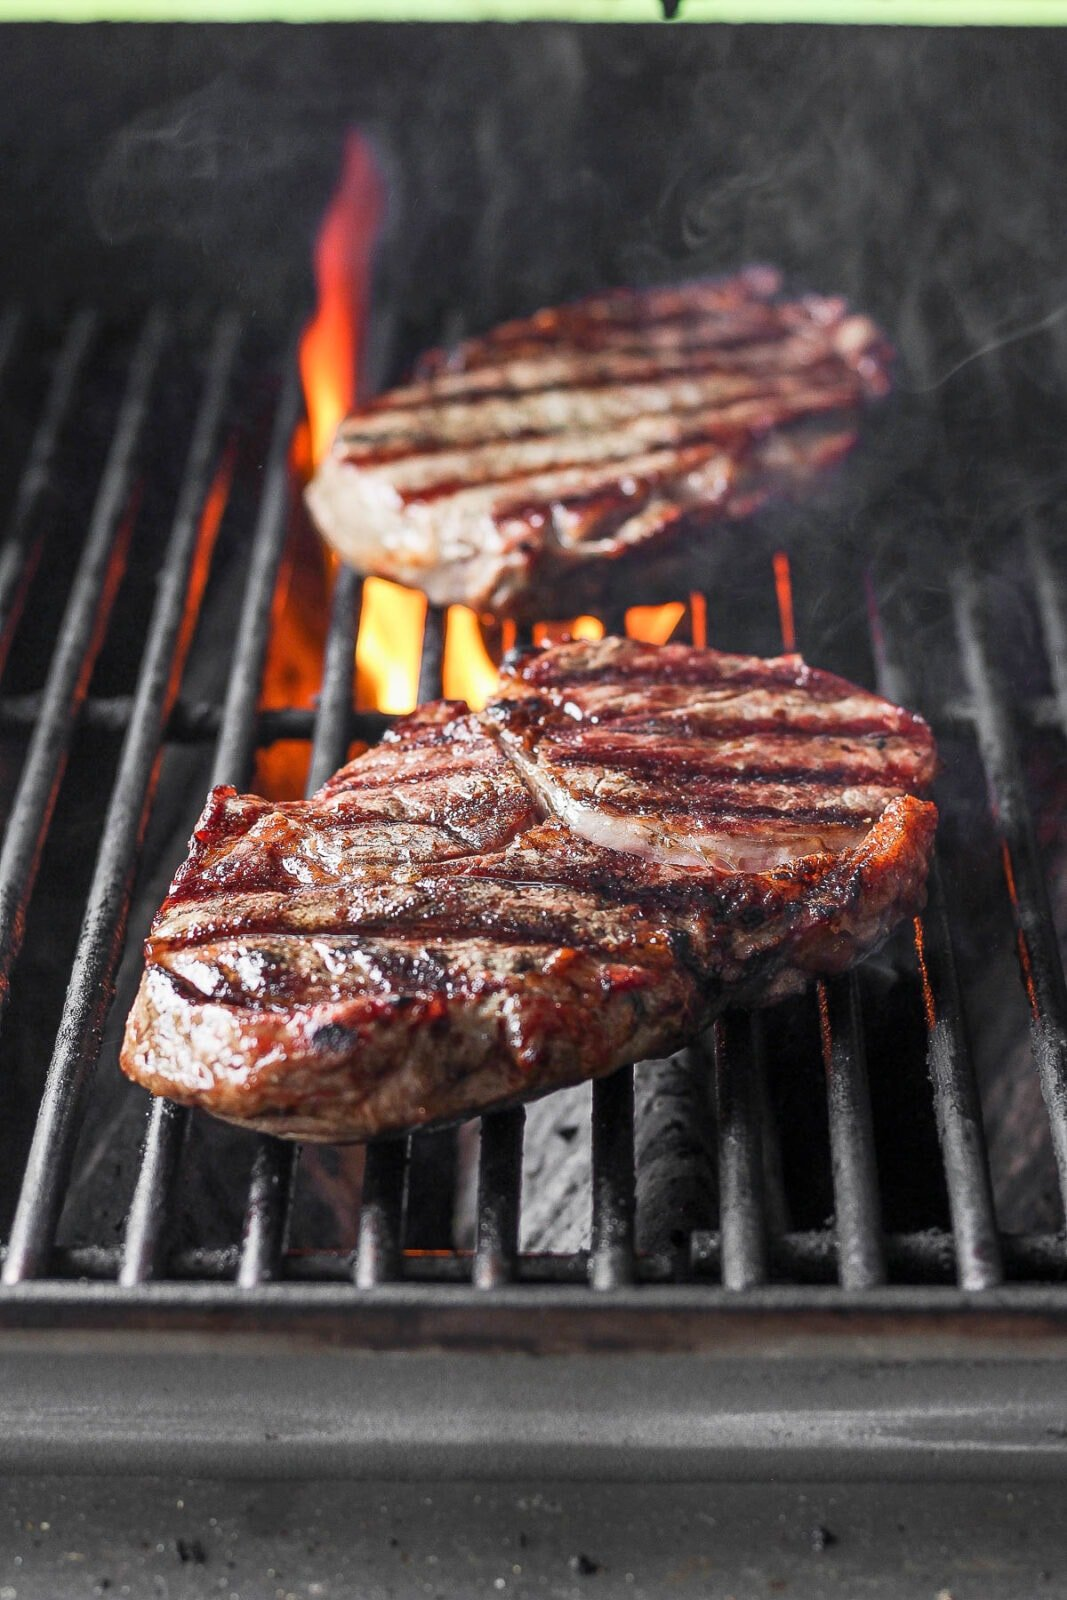 Two steaks on the grill.